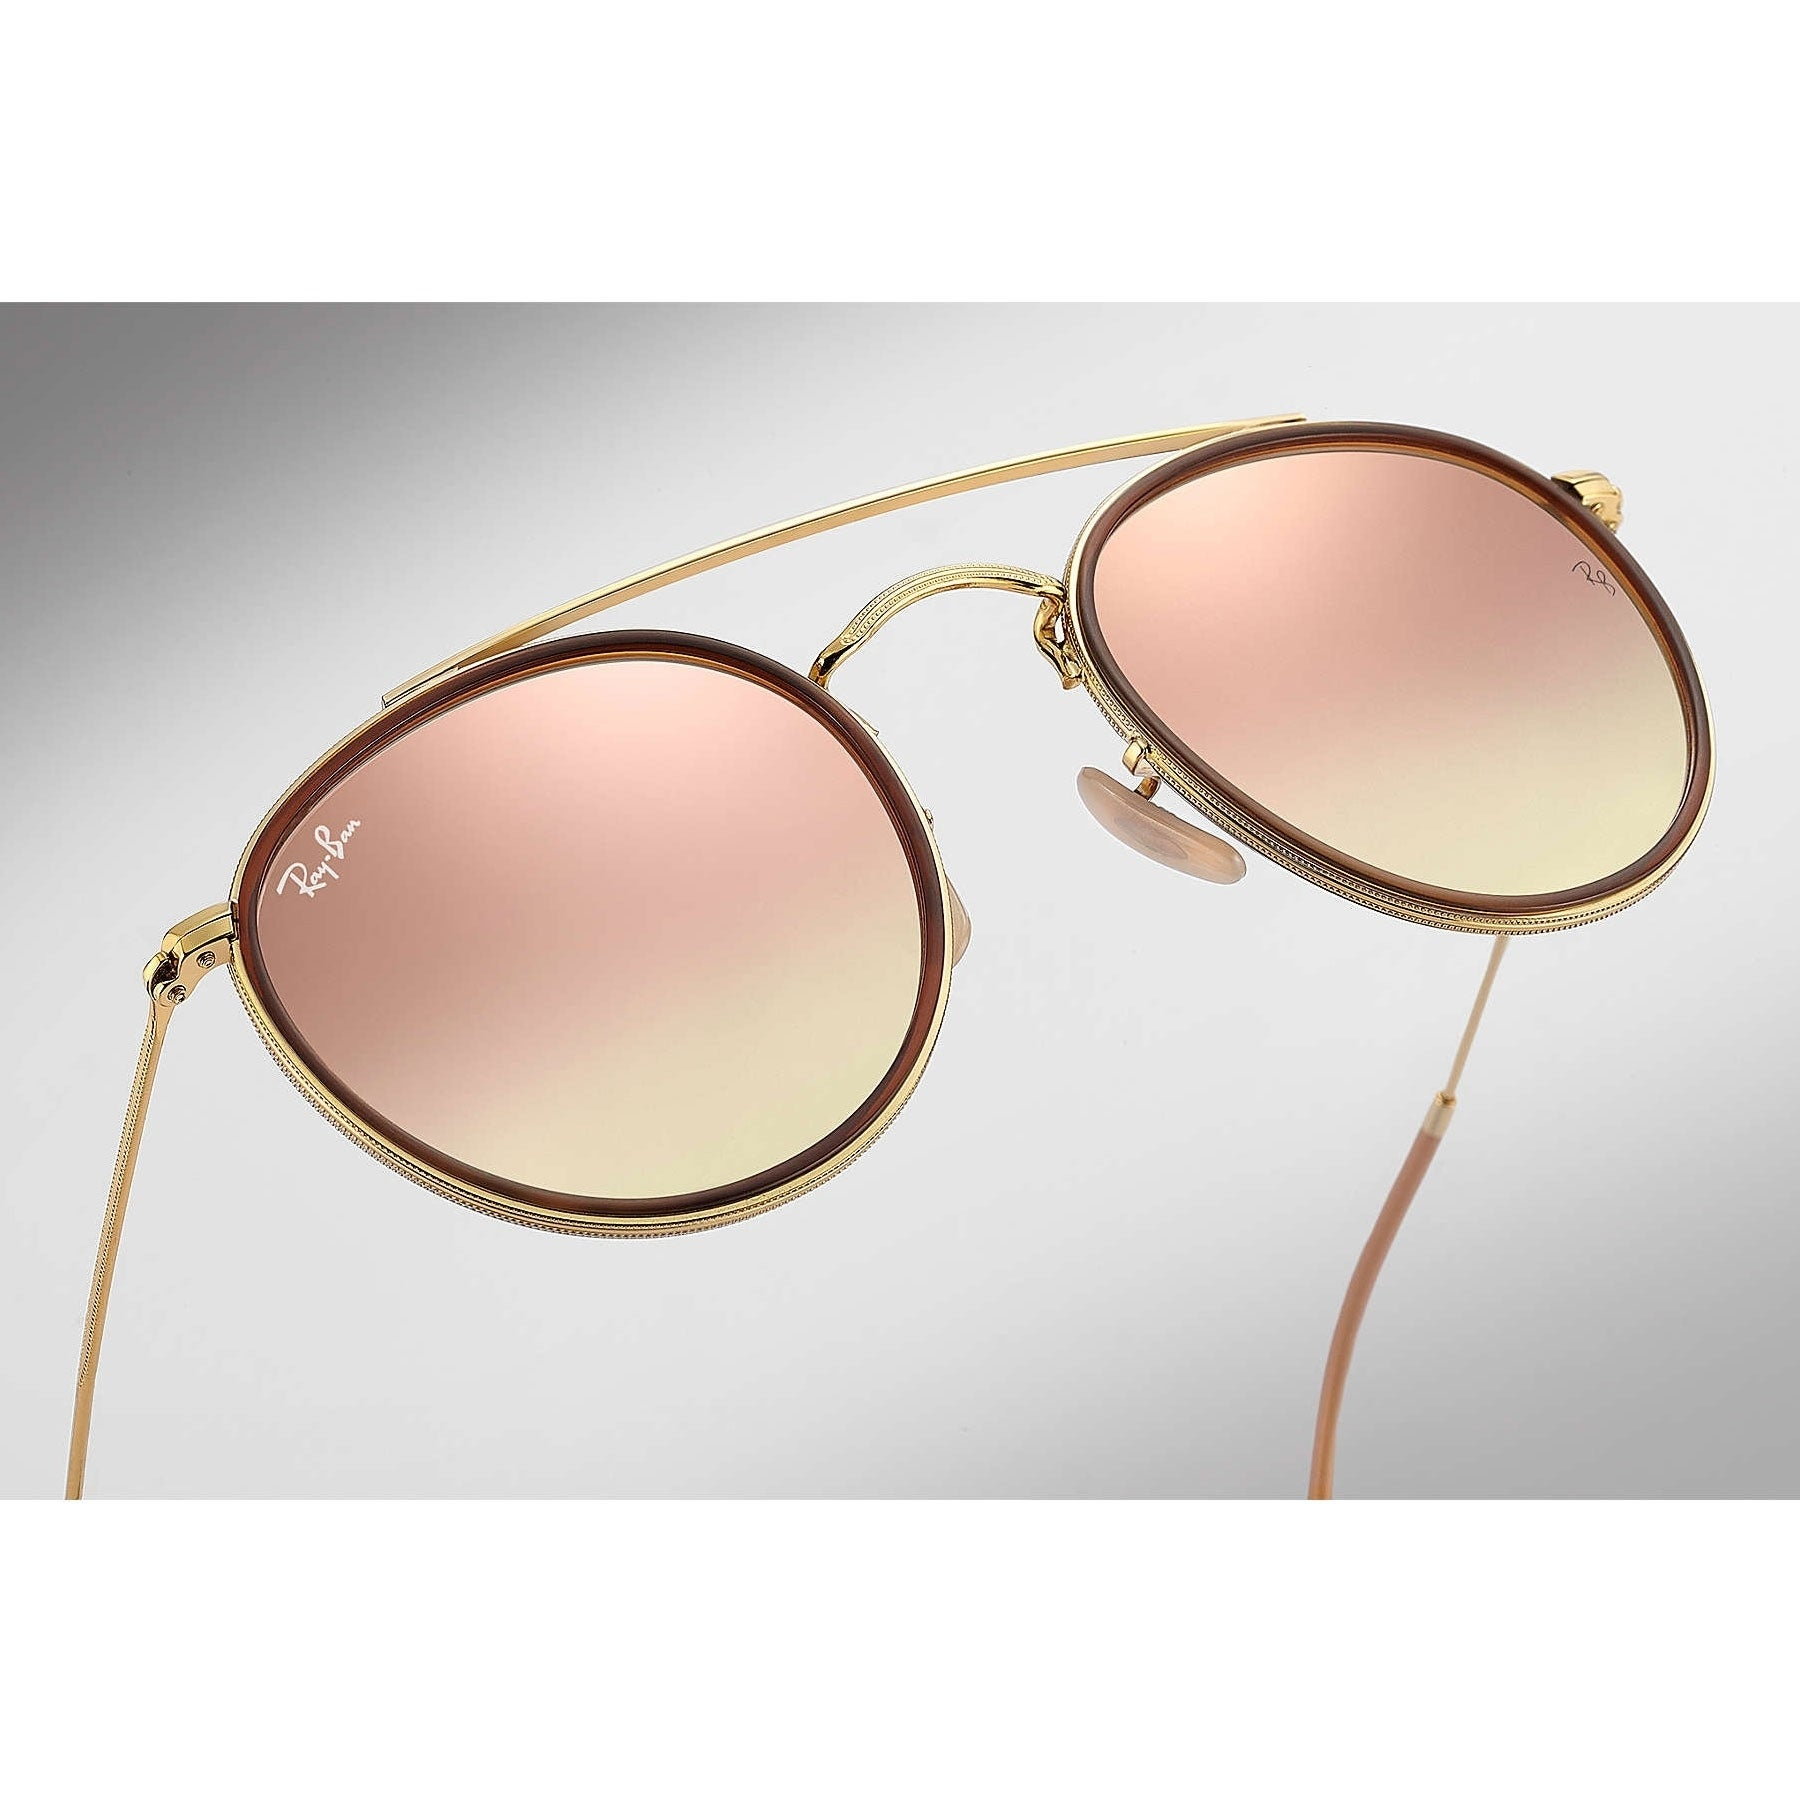 914dff5208d Shop Ray-Ban Round Double Bridge Sunglasses Gold  Copper Gradient Flash  51mm - Free Shipping Today - Overstock - 20457185